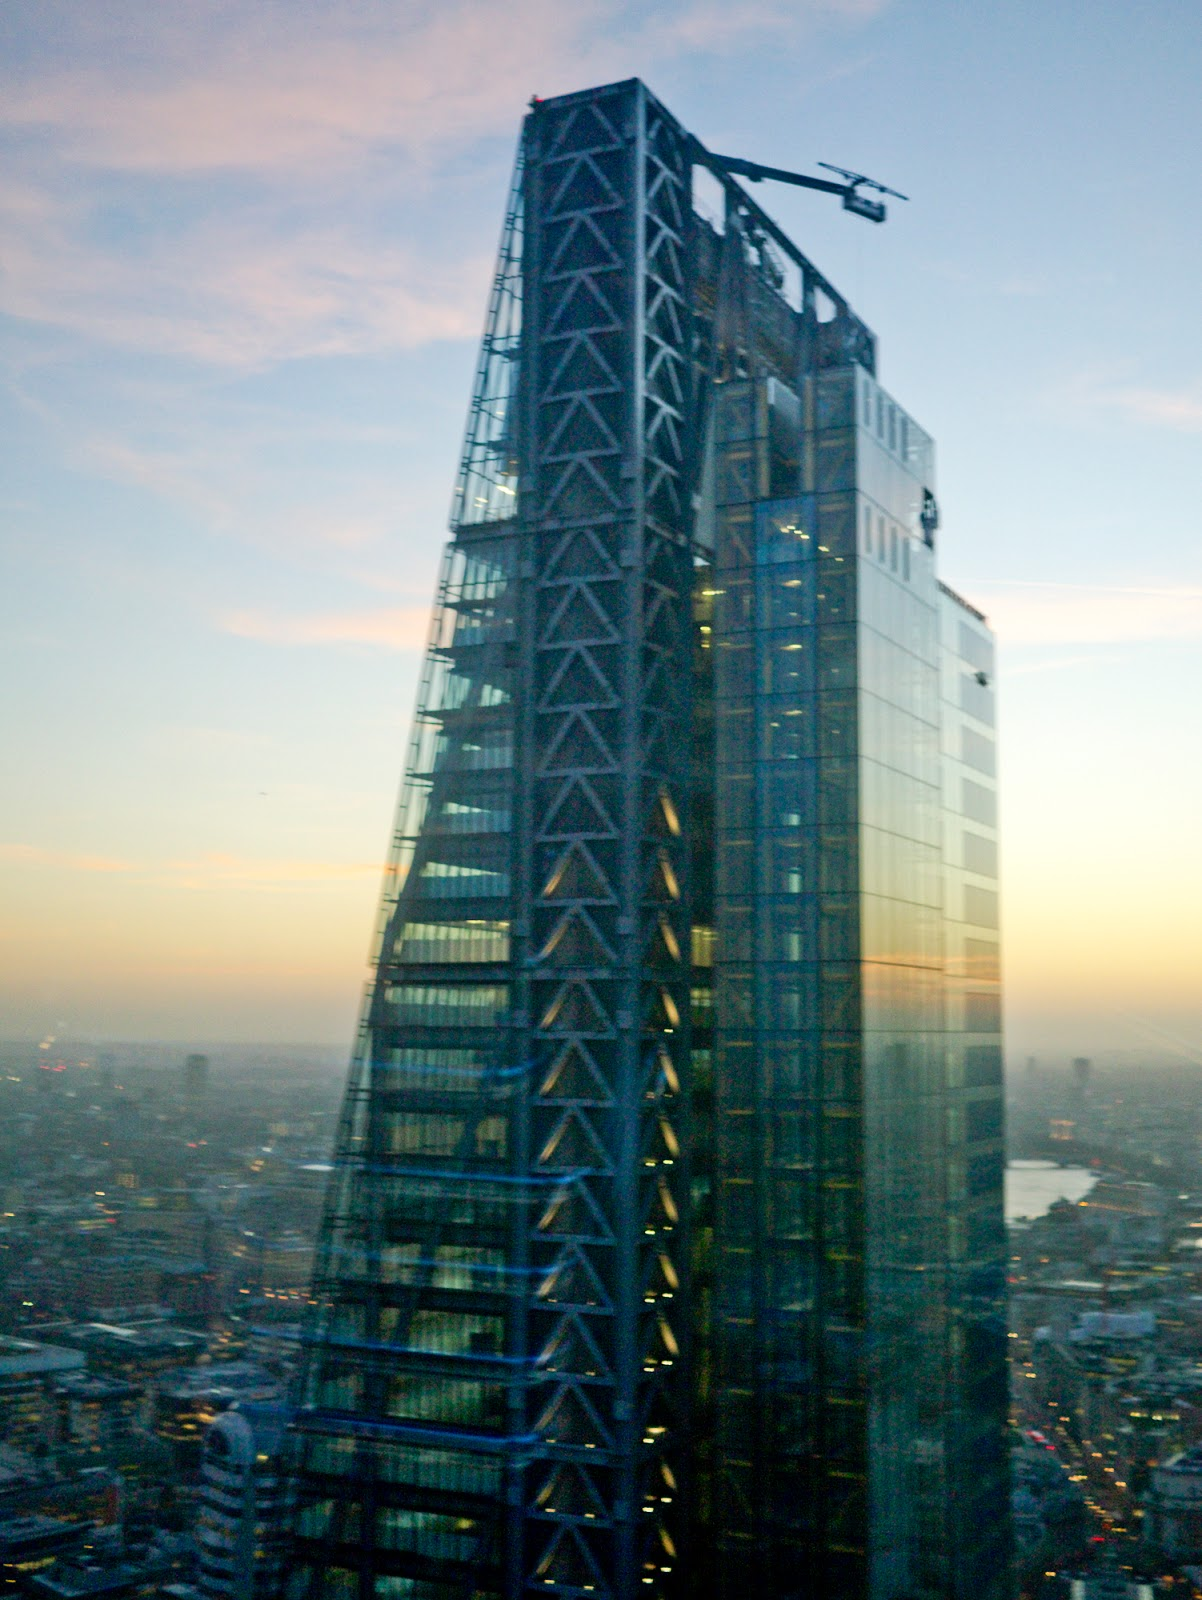 the gherkin aka 30 st mary axe by foster and partners view leadenhall